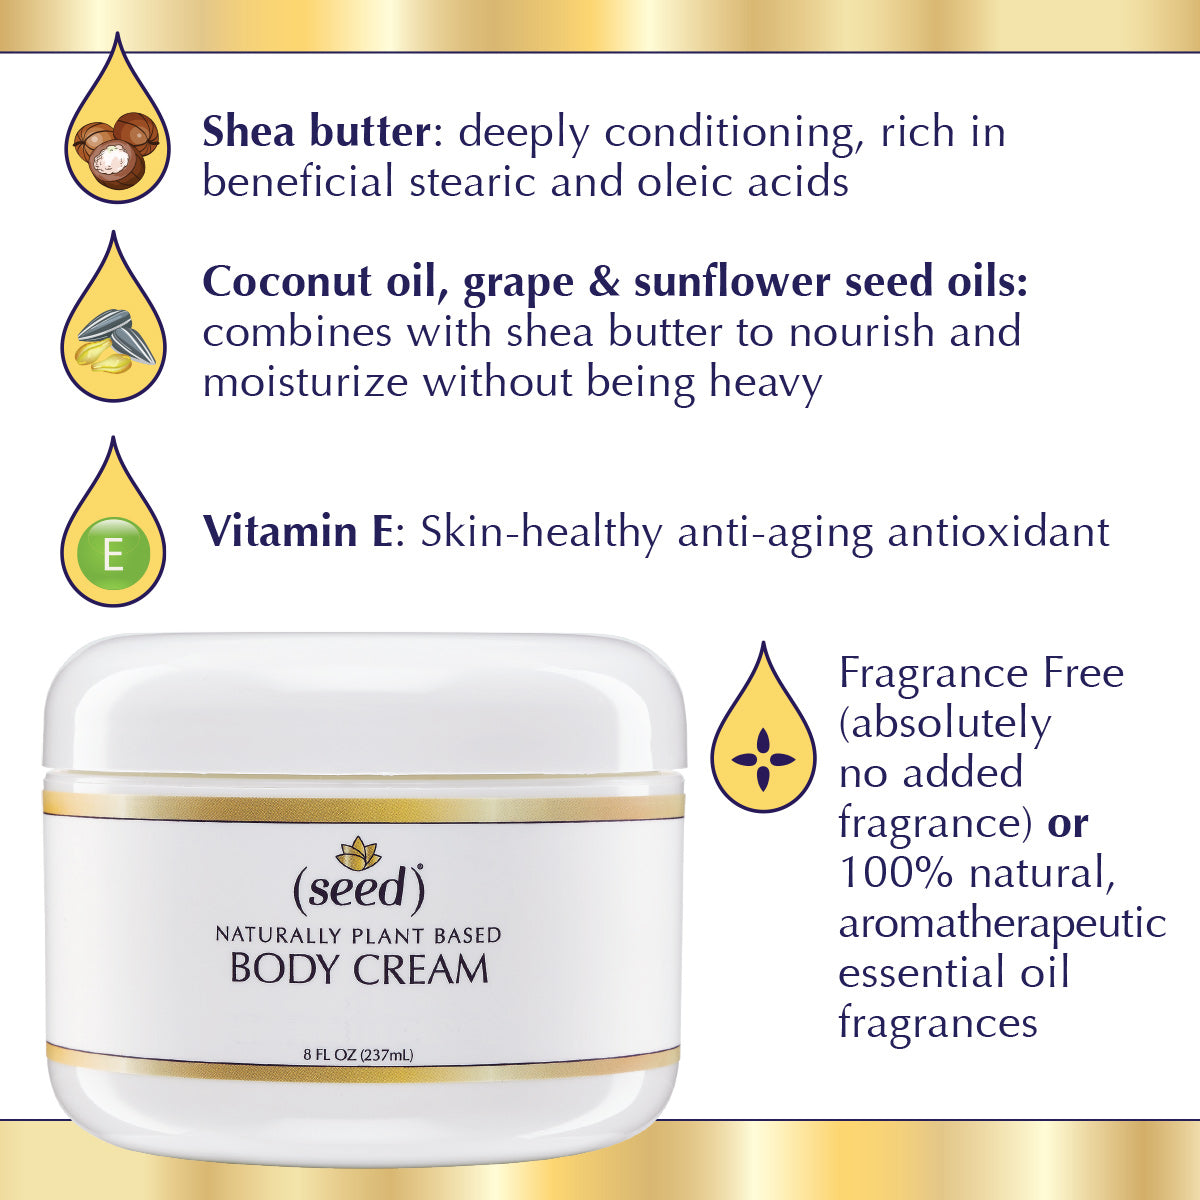 Seed Rich Silky Body Cream features shea butter, coconut oil, grape, sunflower seed oil